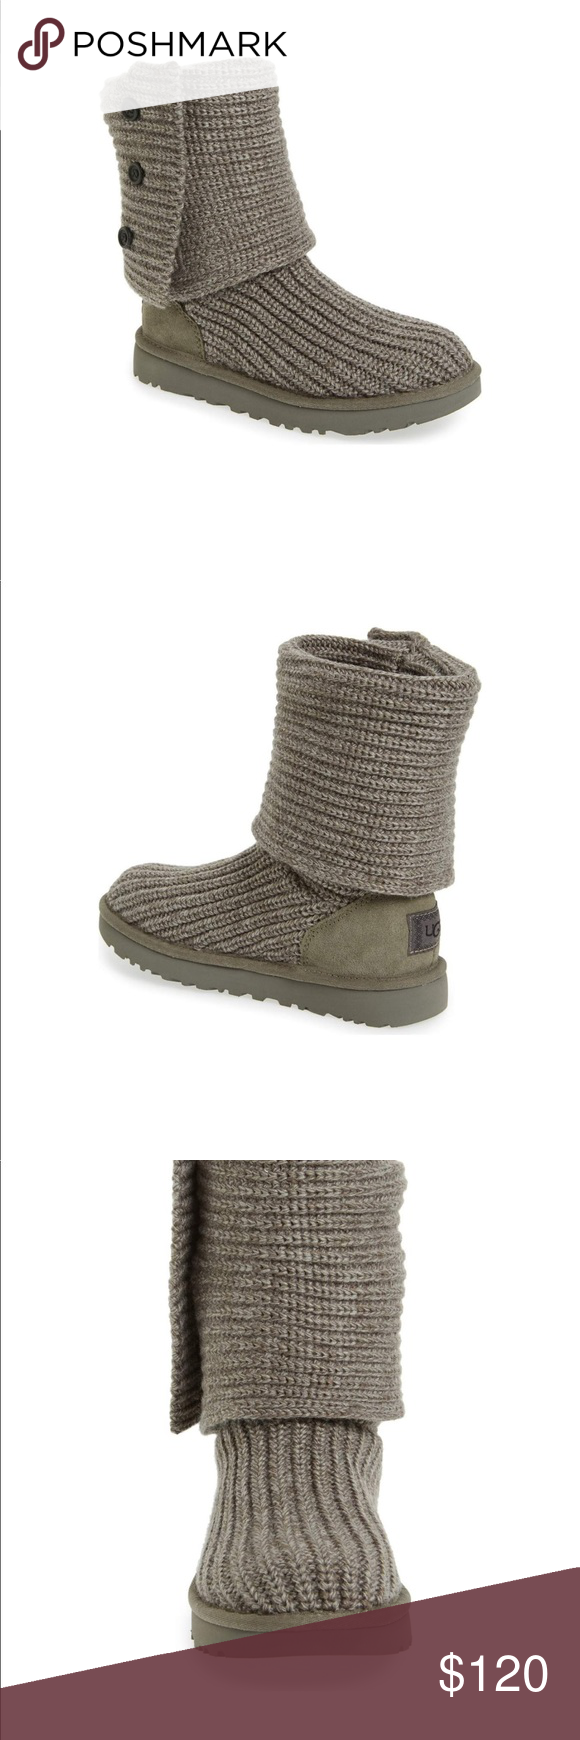 84e45f3bf07 Ugg Classic Cardy 1016555 grey new Authentic Ugg Classic Cardy ...